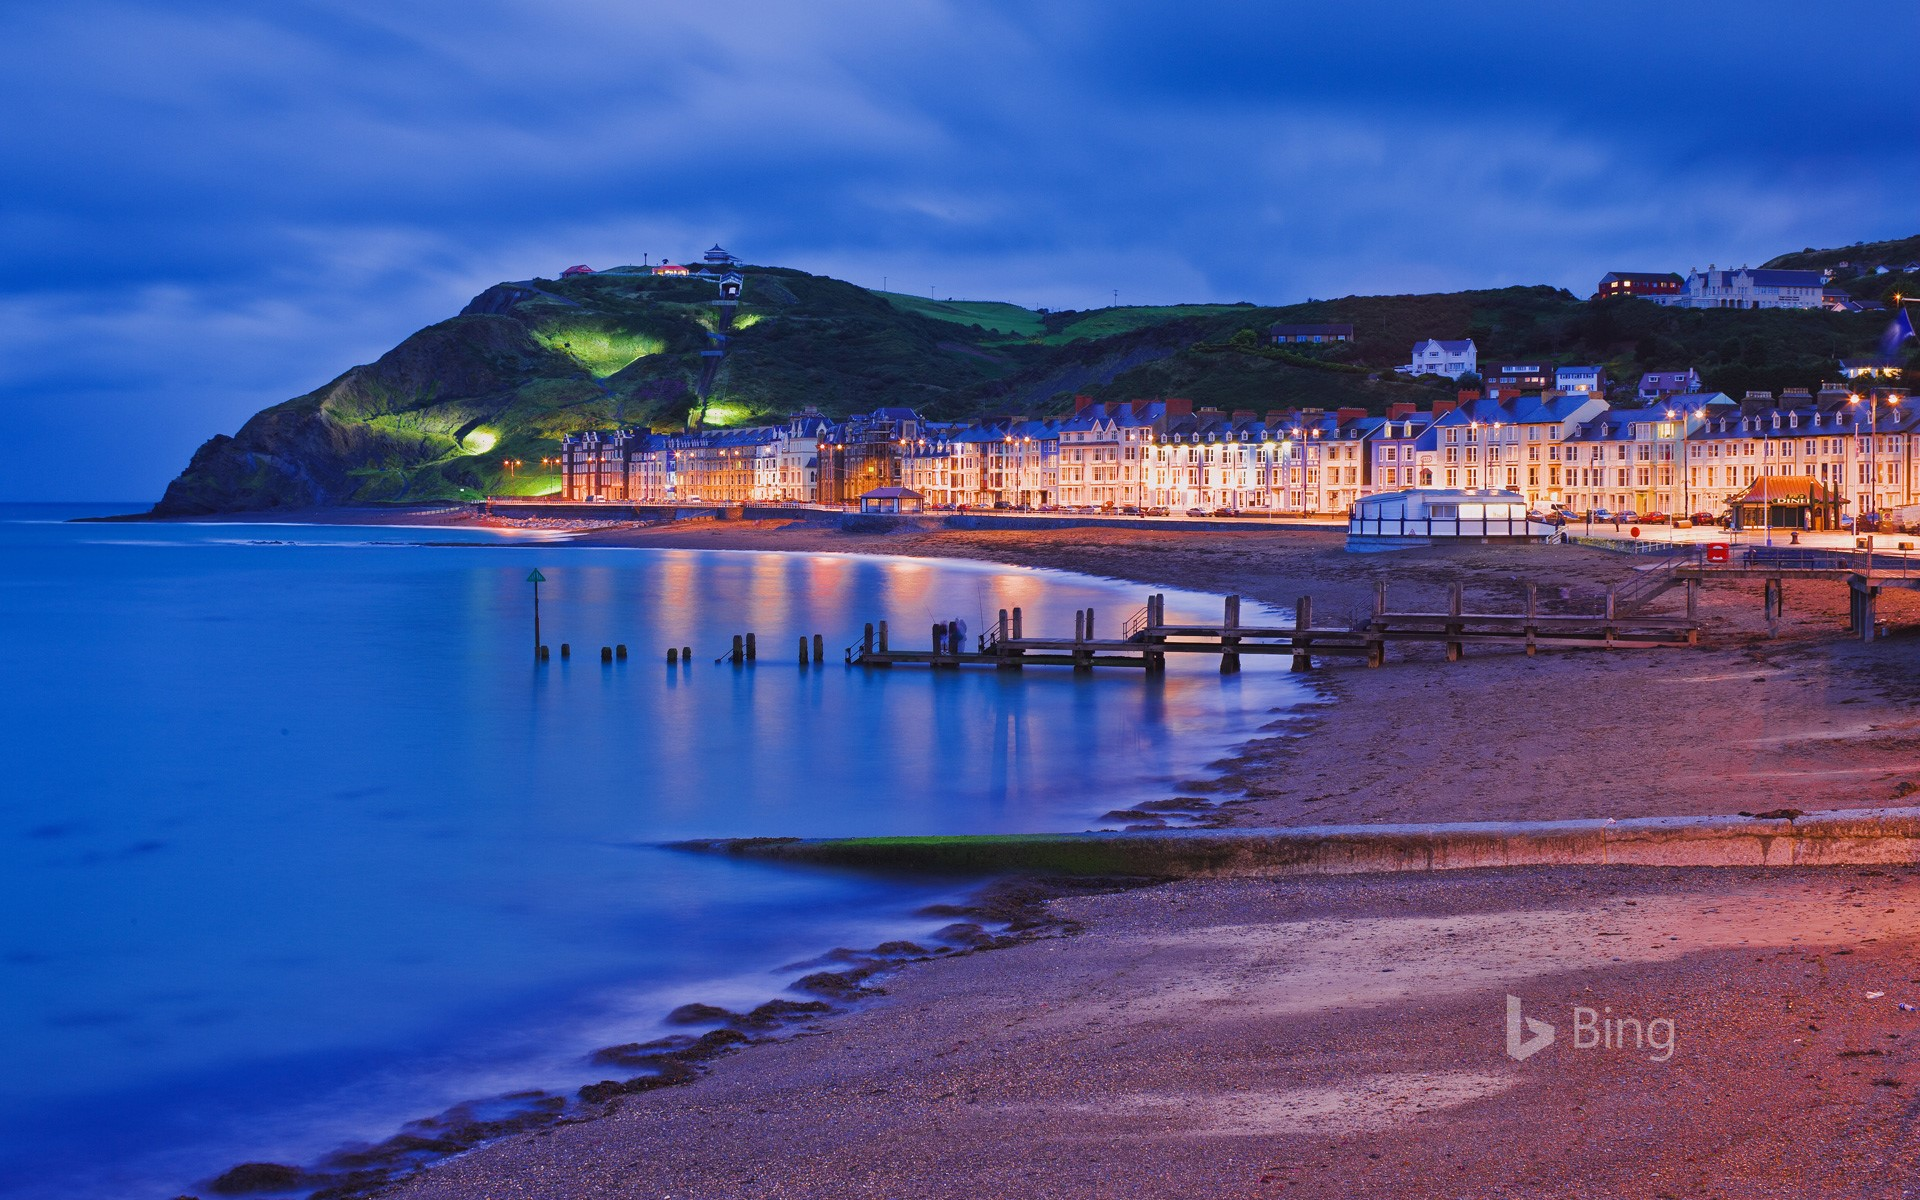 The seafront and promenade of Aberystwyth in Ceredigion, Wales